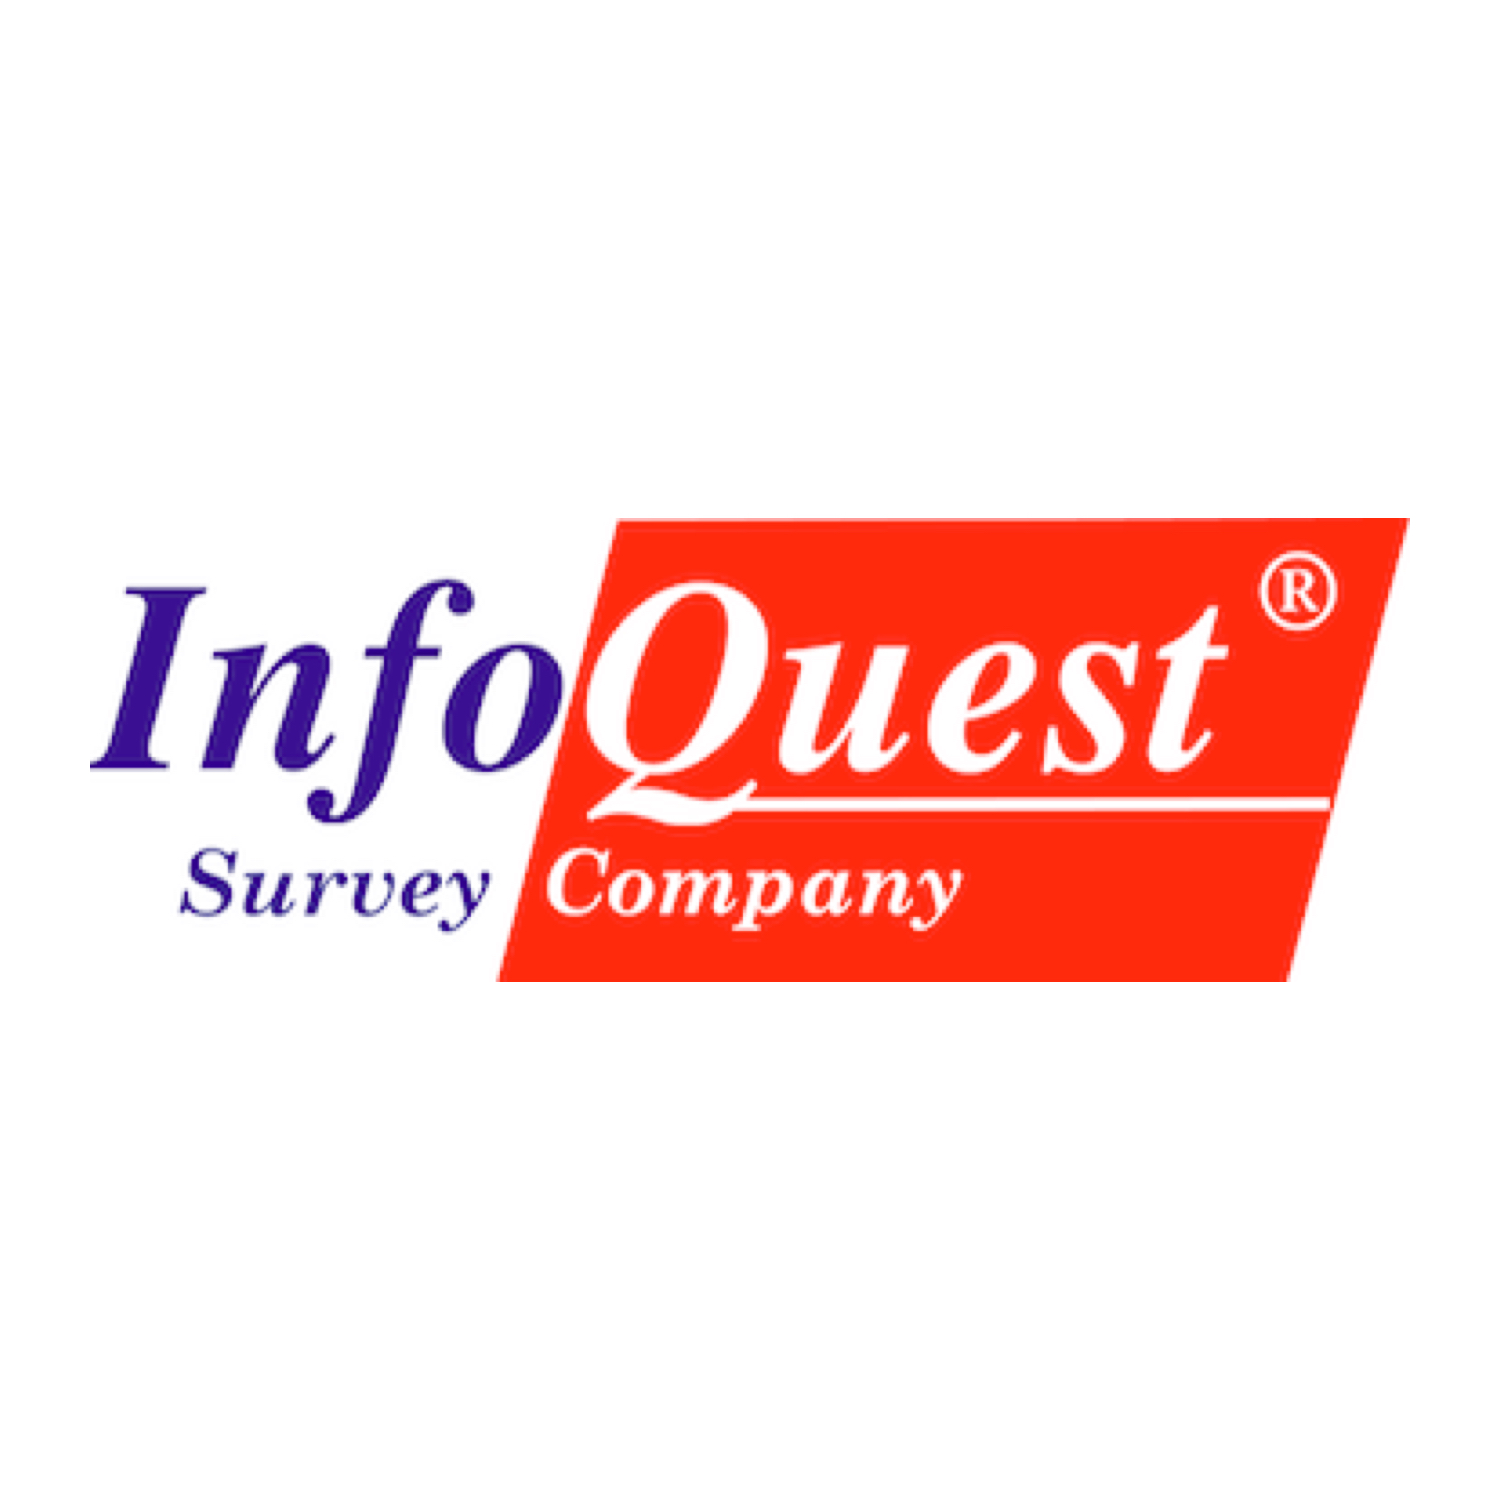 InfoQuest   InfoQuest offers maximum results through high response rates, actionable results and attributable feedback. Focus is on B2B customers, suppliers and employees - the 3 legs of your resource stool. This a strategic feedback program for your business.